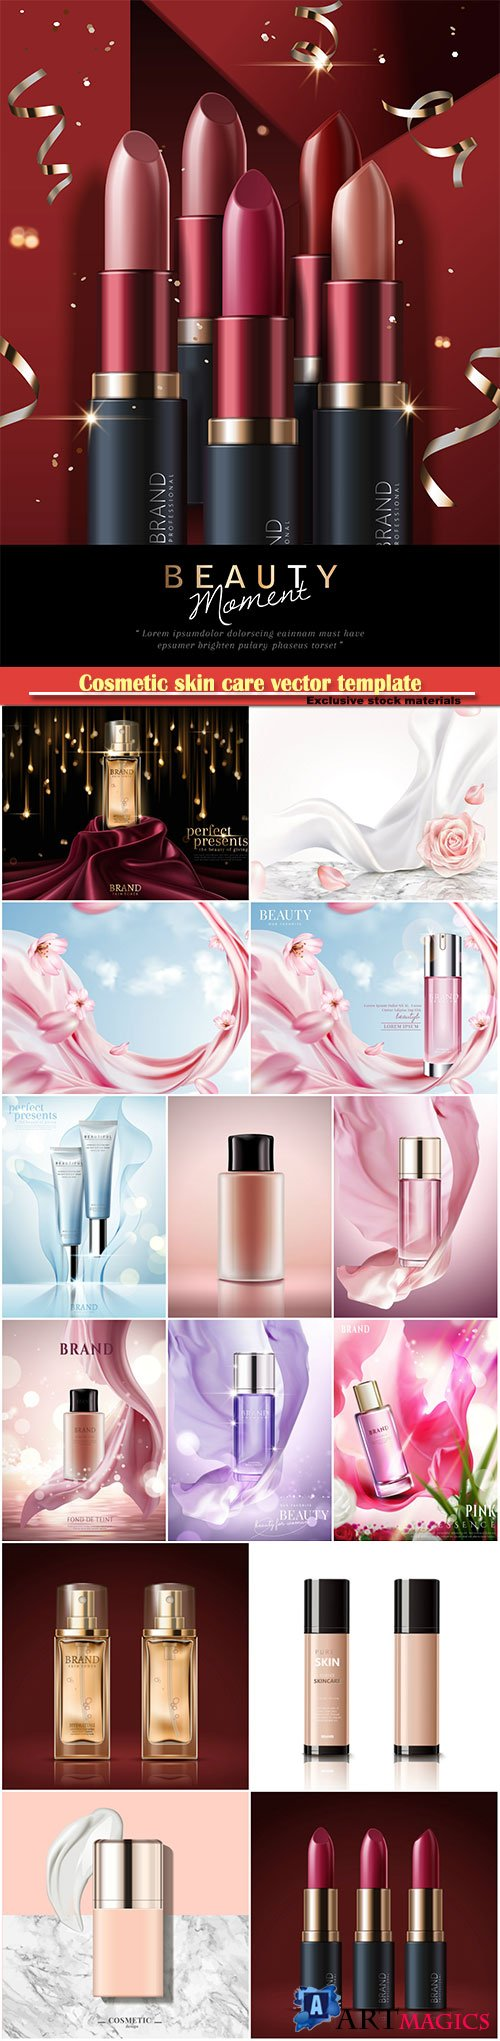 Cosmetic skin care vector template, refreshing skin care tube ads